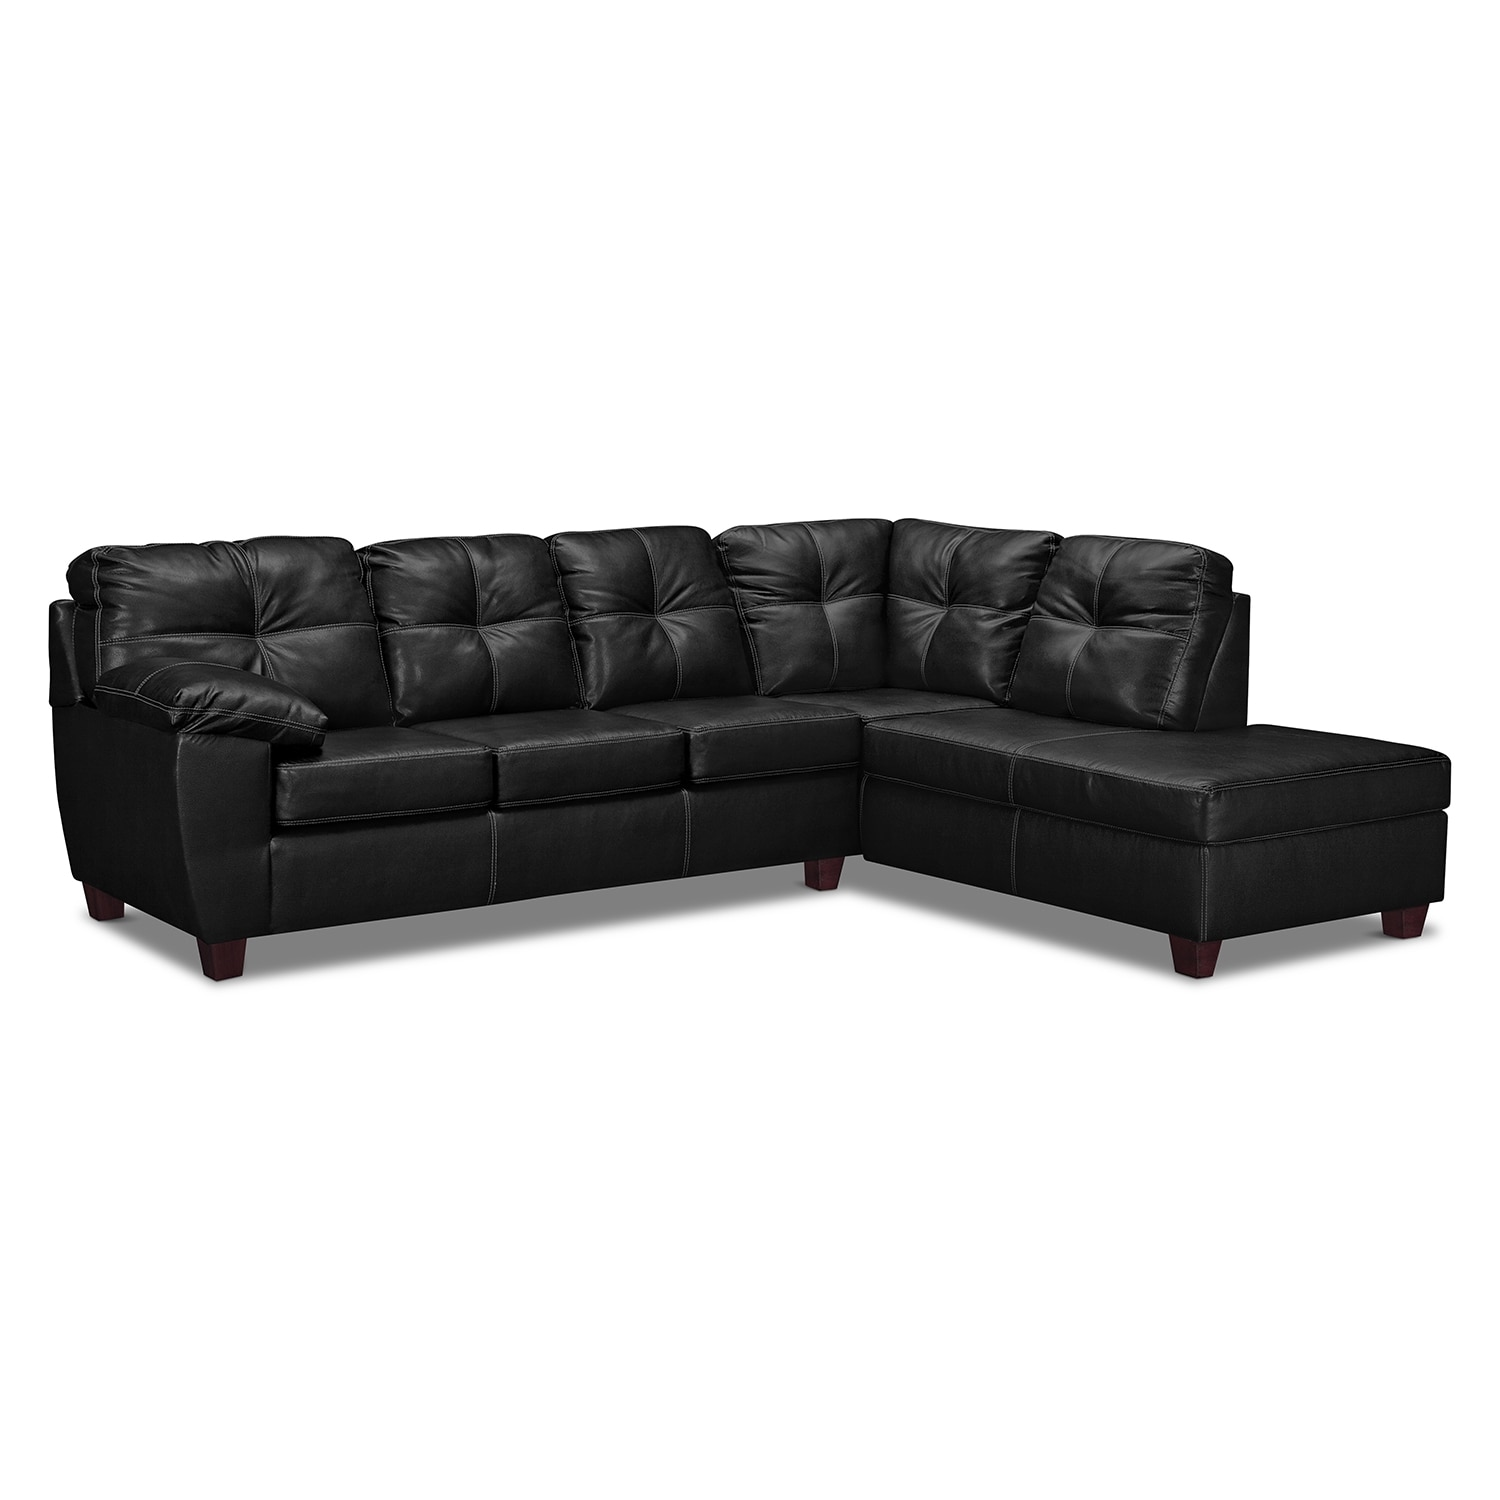 Rialto Onyx 2 Pc. Innerspring Sleeper Sectional with Right-Facing Chaise